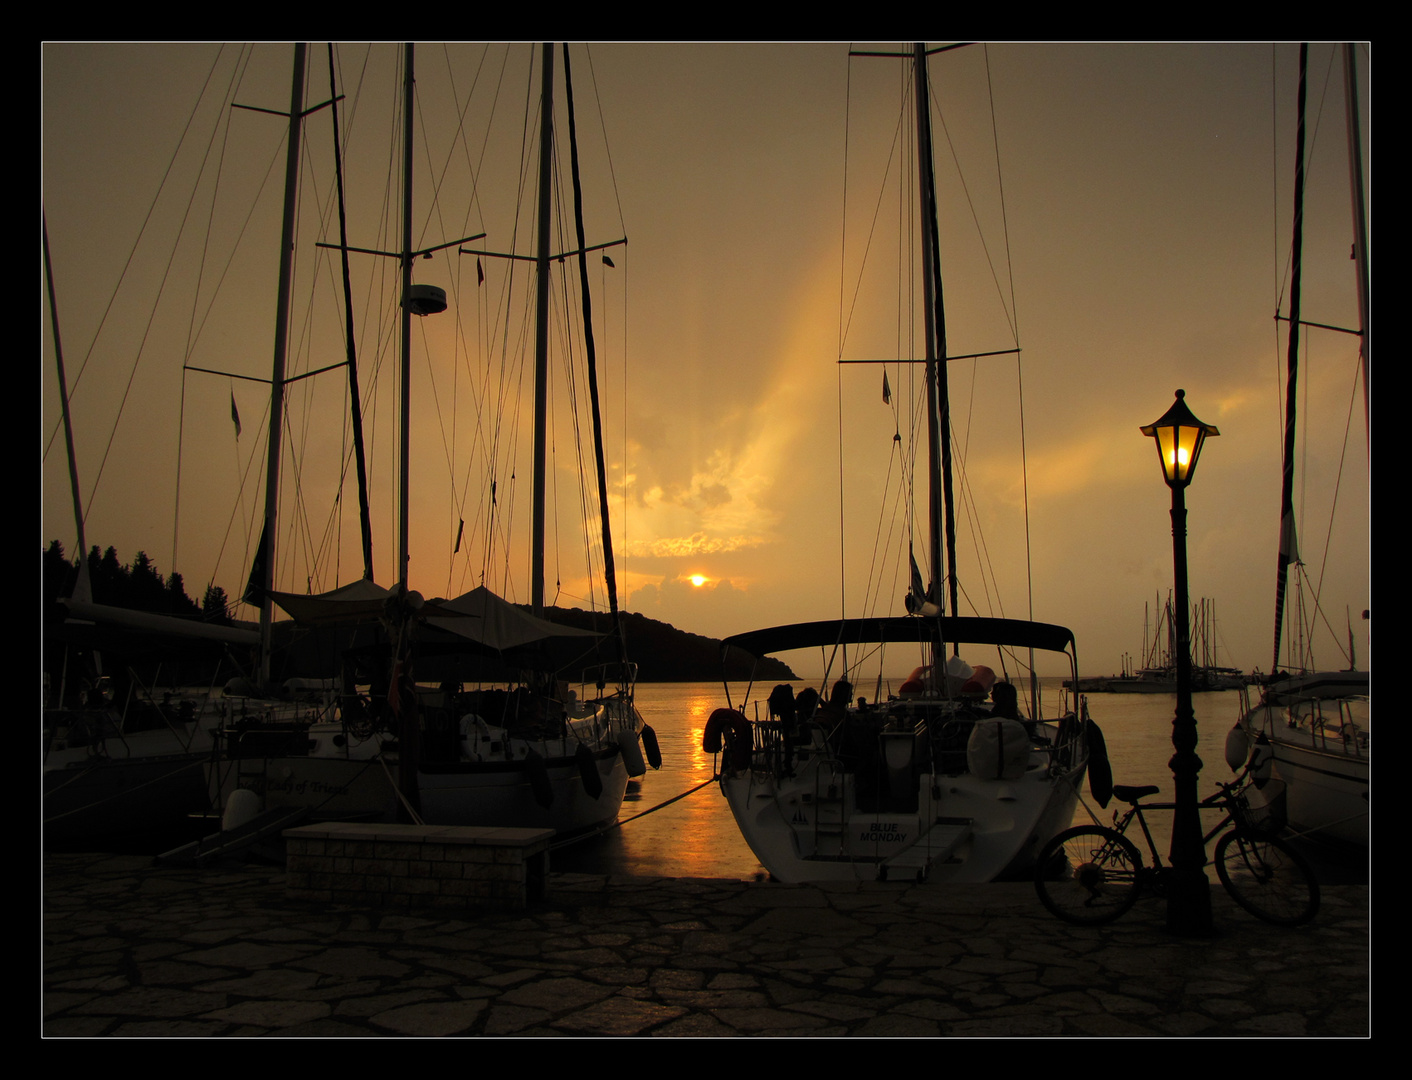 sunset in the harbour